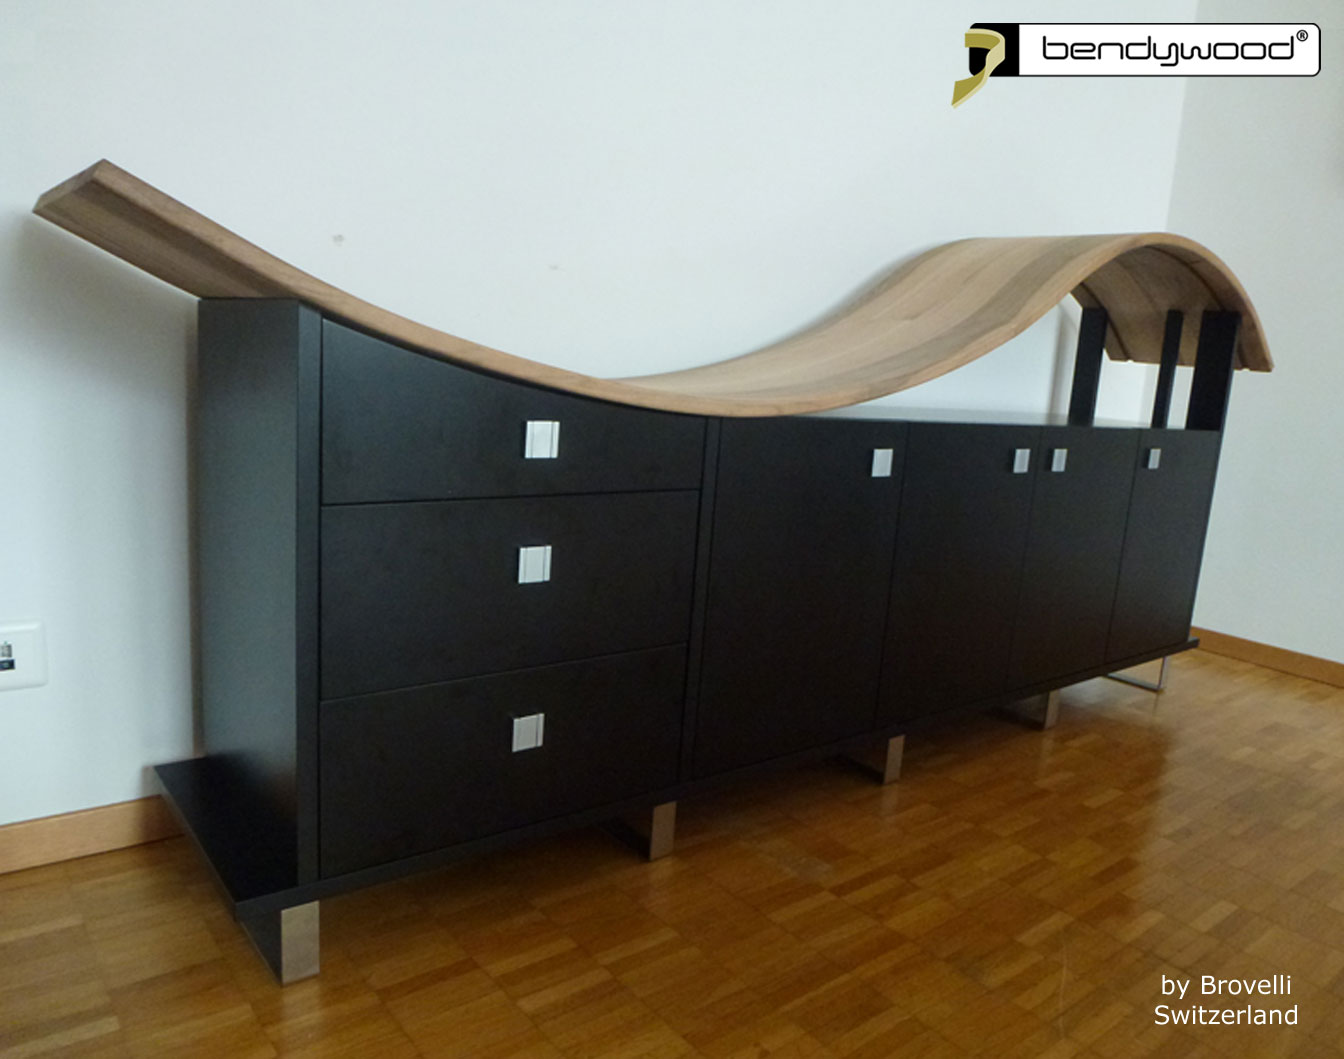 Bending wood Bendywood® - sideboard